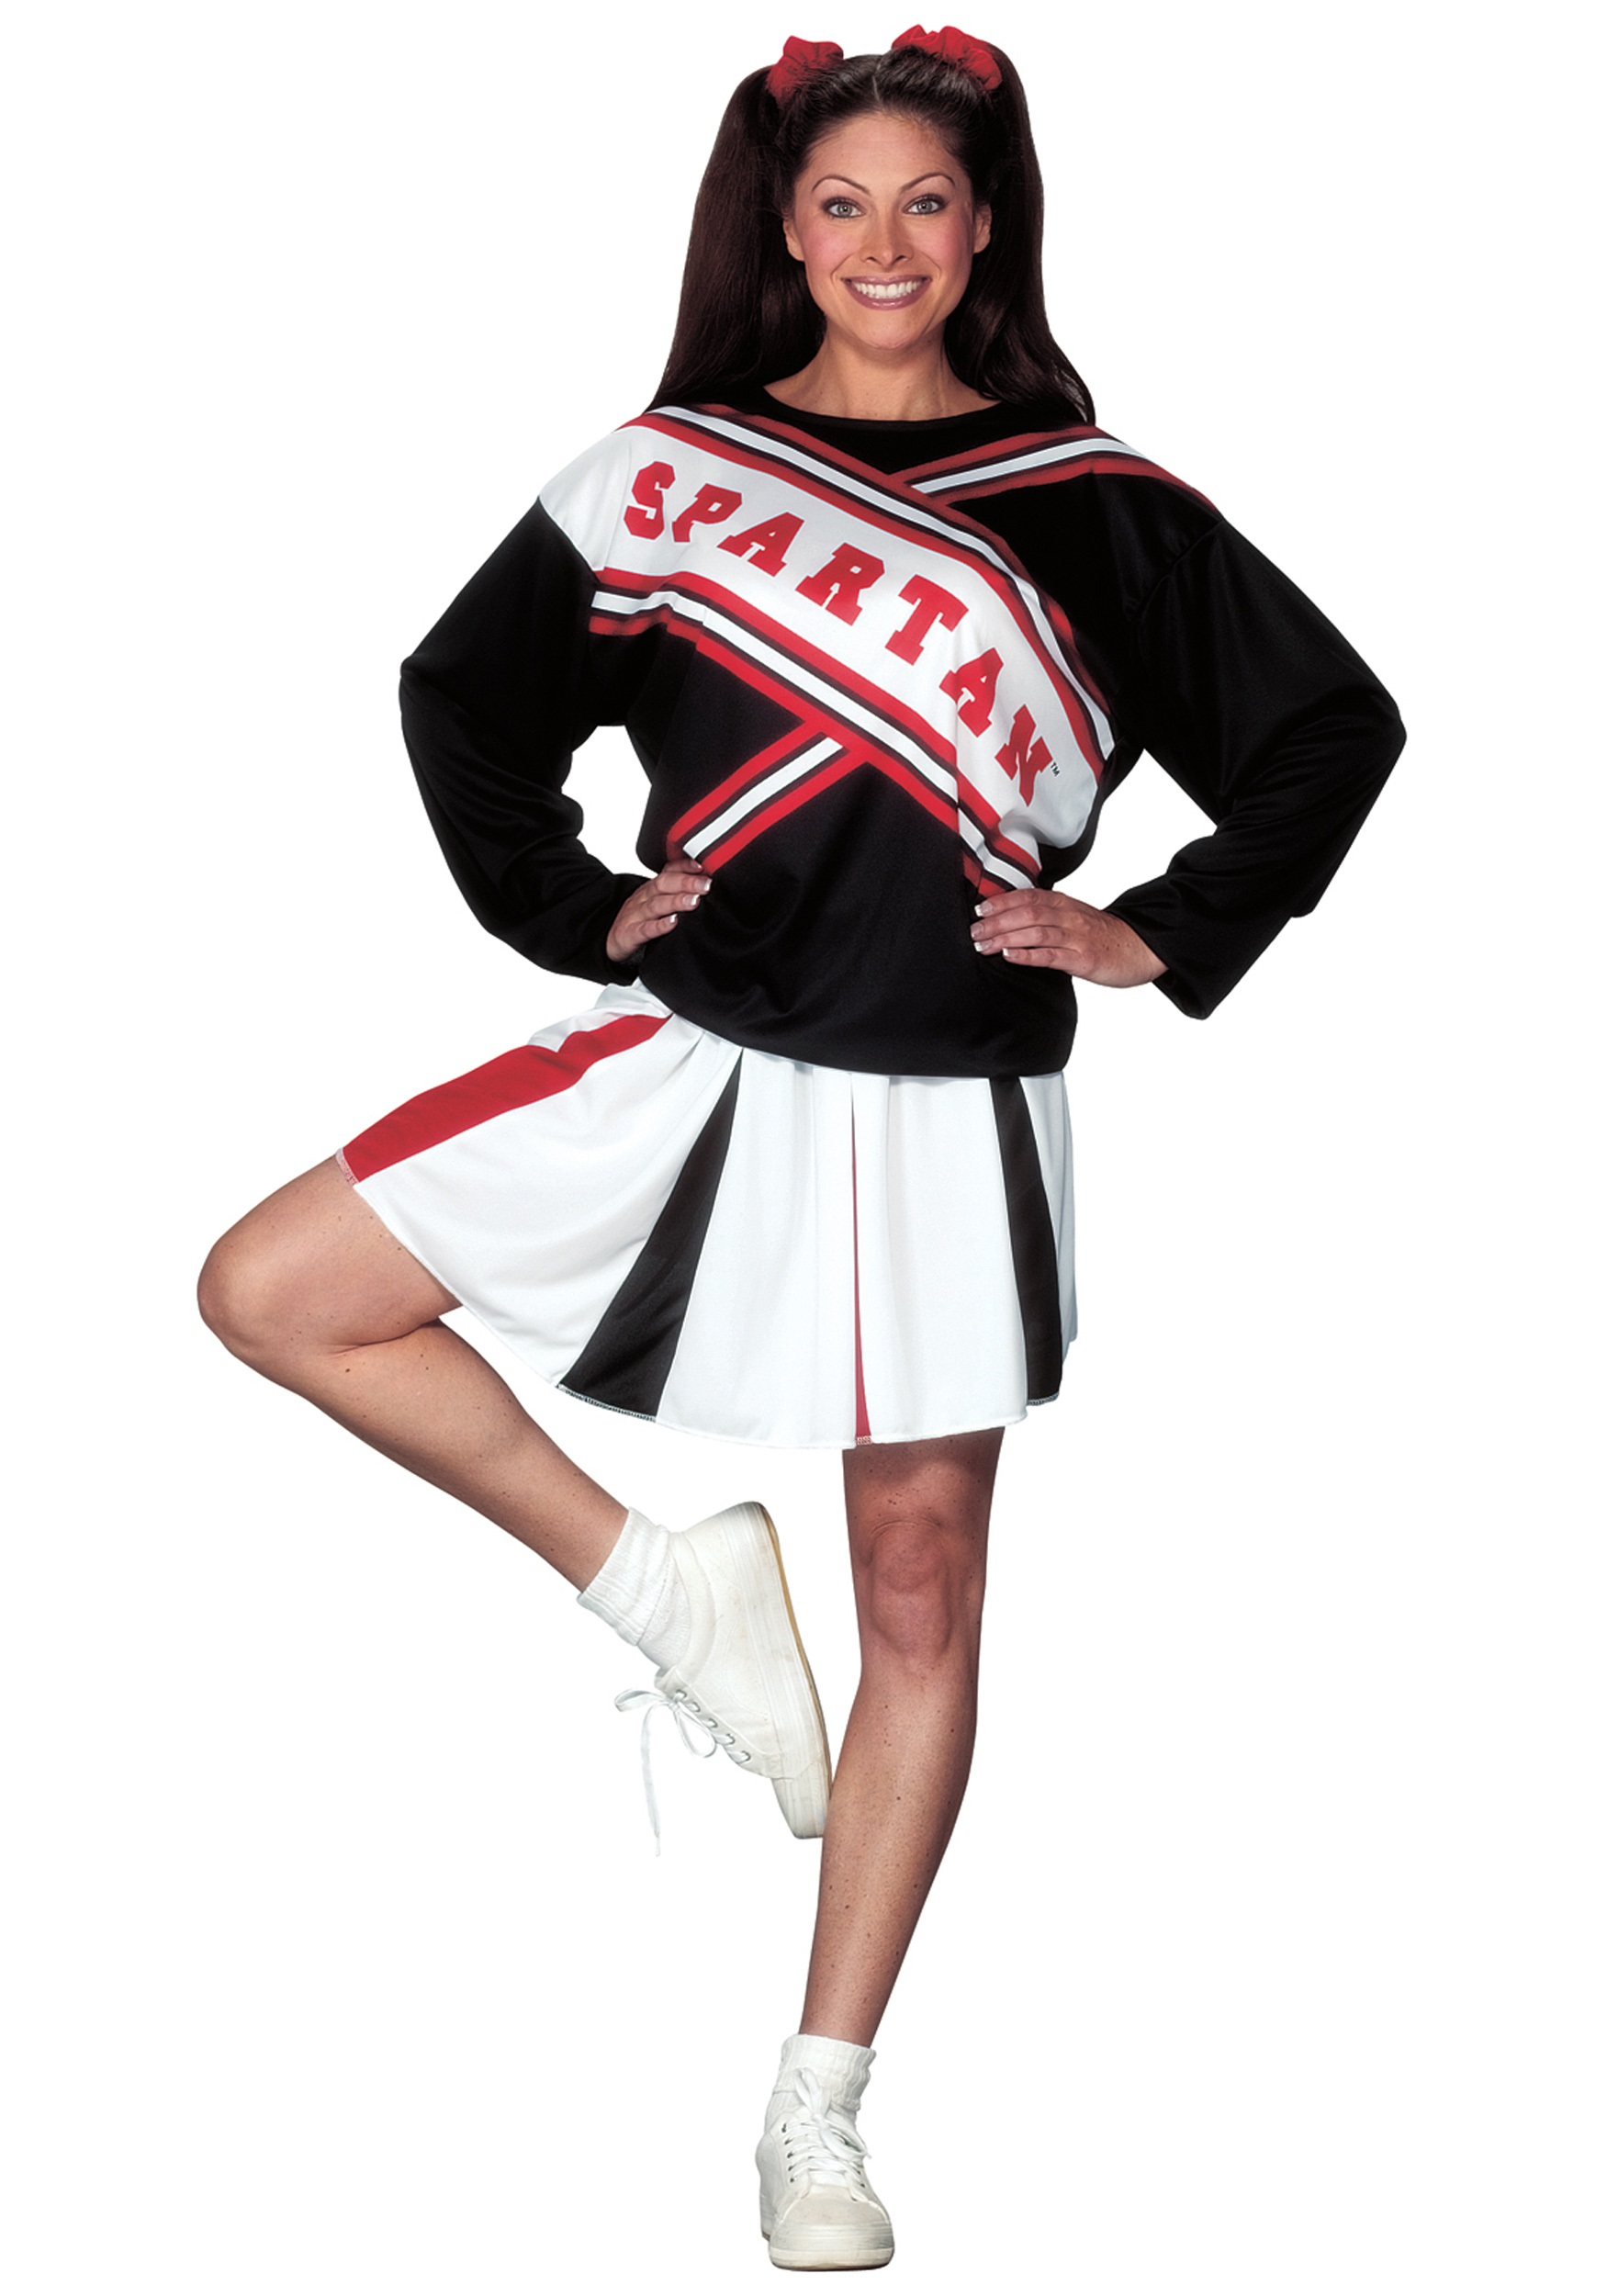 8f860471c5d Spartan Cheerleader Costume